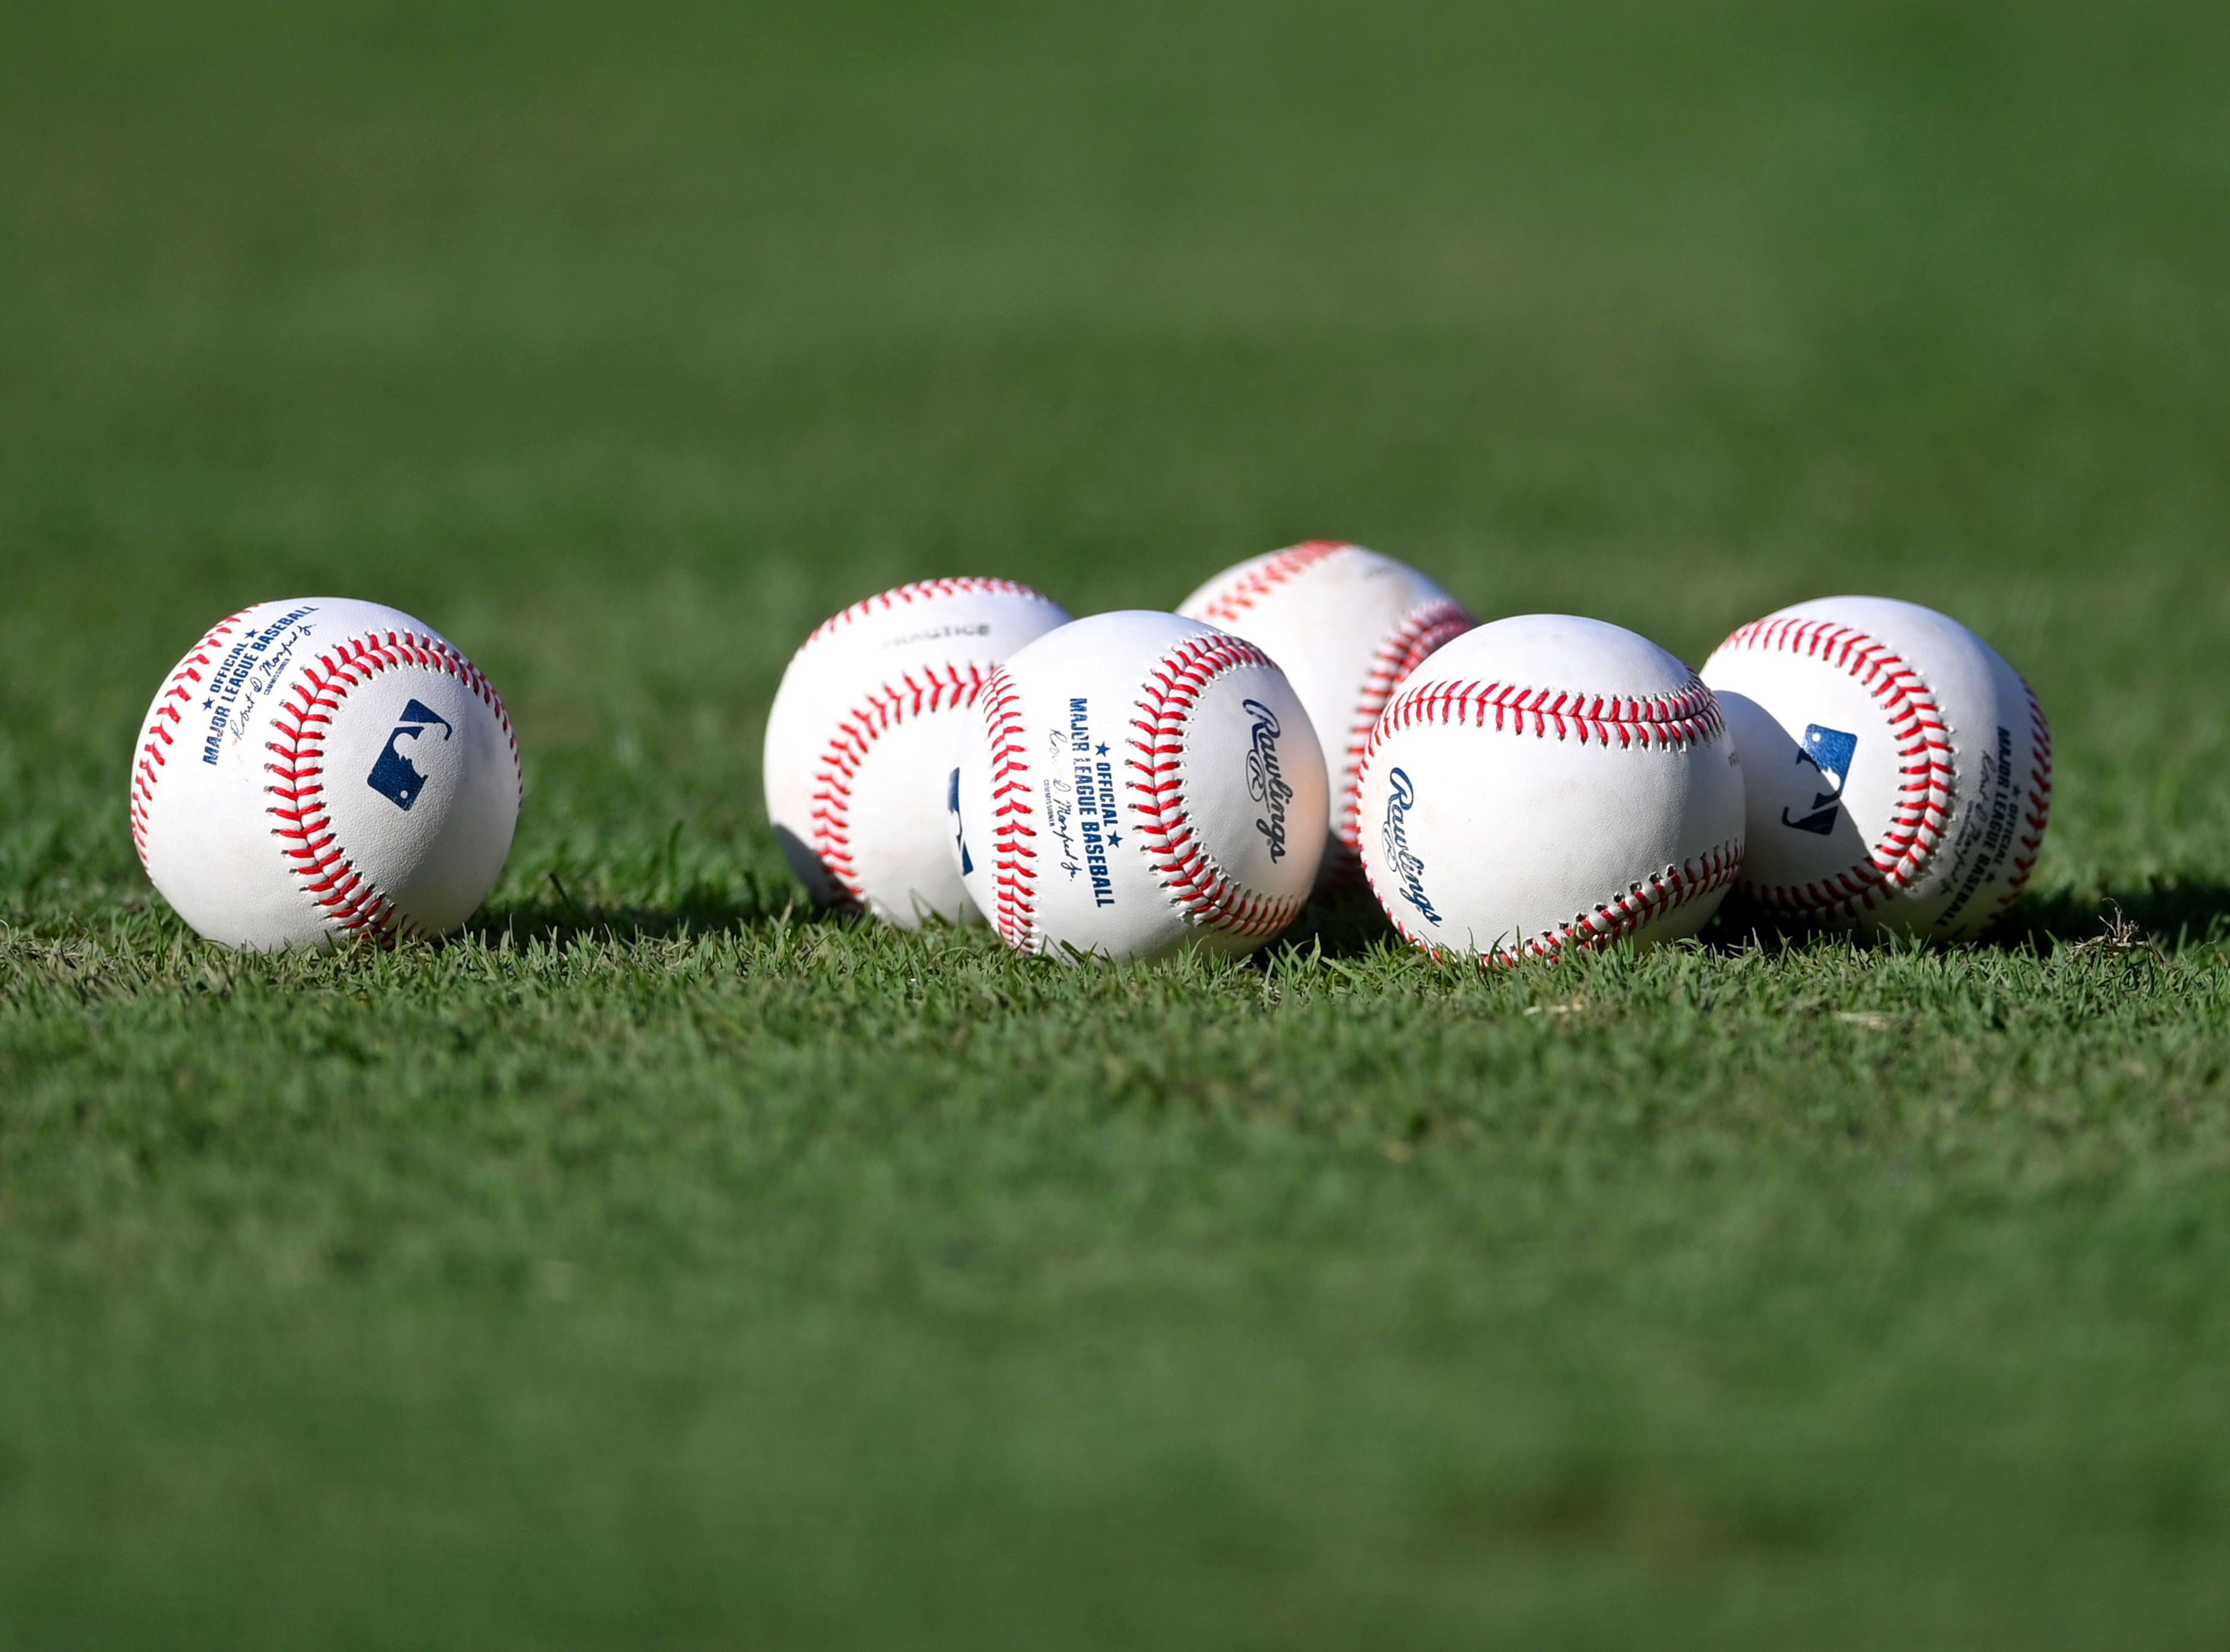 Sep 20, 2021; Anaheim, California, USA; Detailed view of official Major League baseballs set on the grass before the game between the Los Angeles Angels and the Houston Astros at Angel Stadium. Mandatory Credit: Jayne Kamin-Oncea-USA TODAY Sports